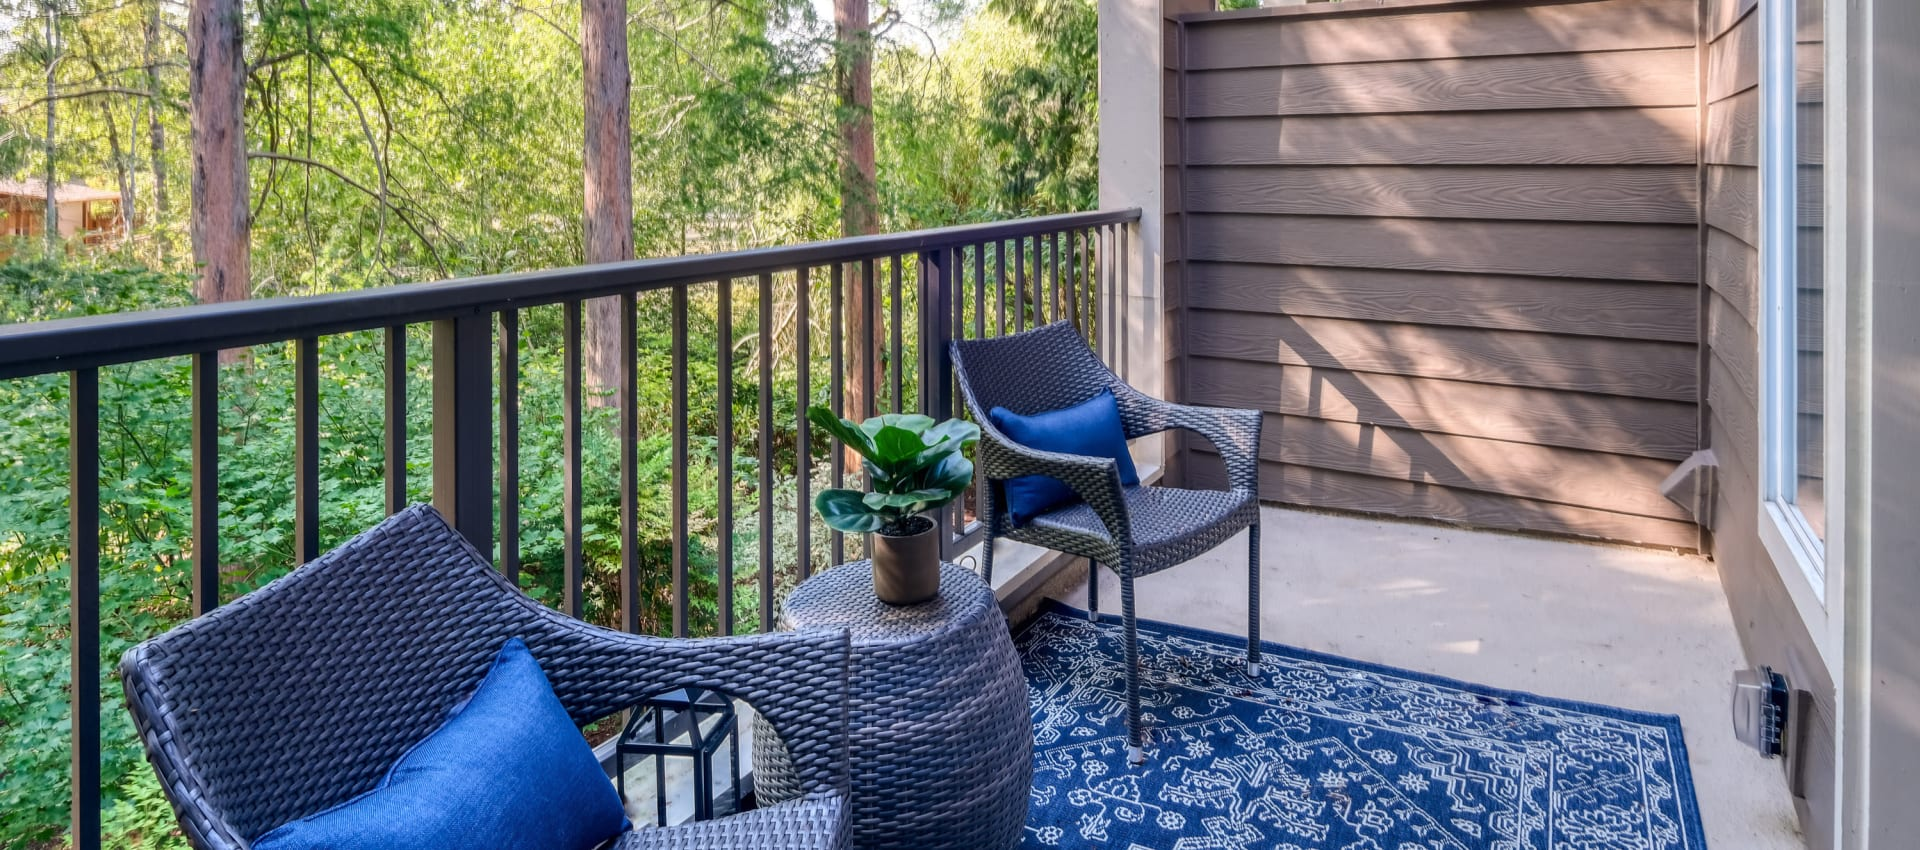 Patio at Waterhouse Place in Beaverton, OR